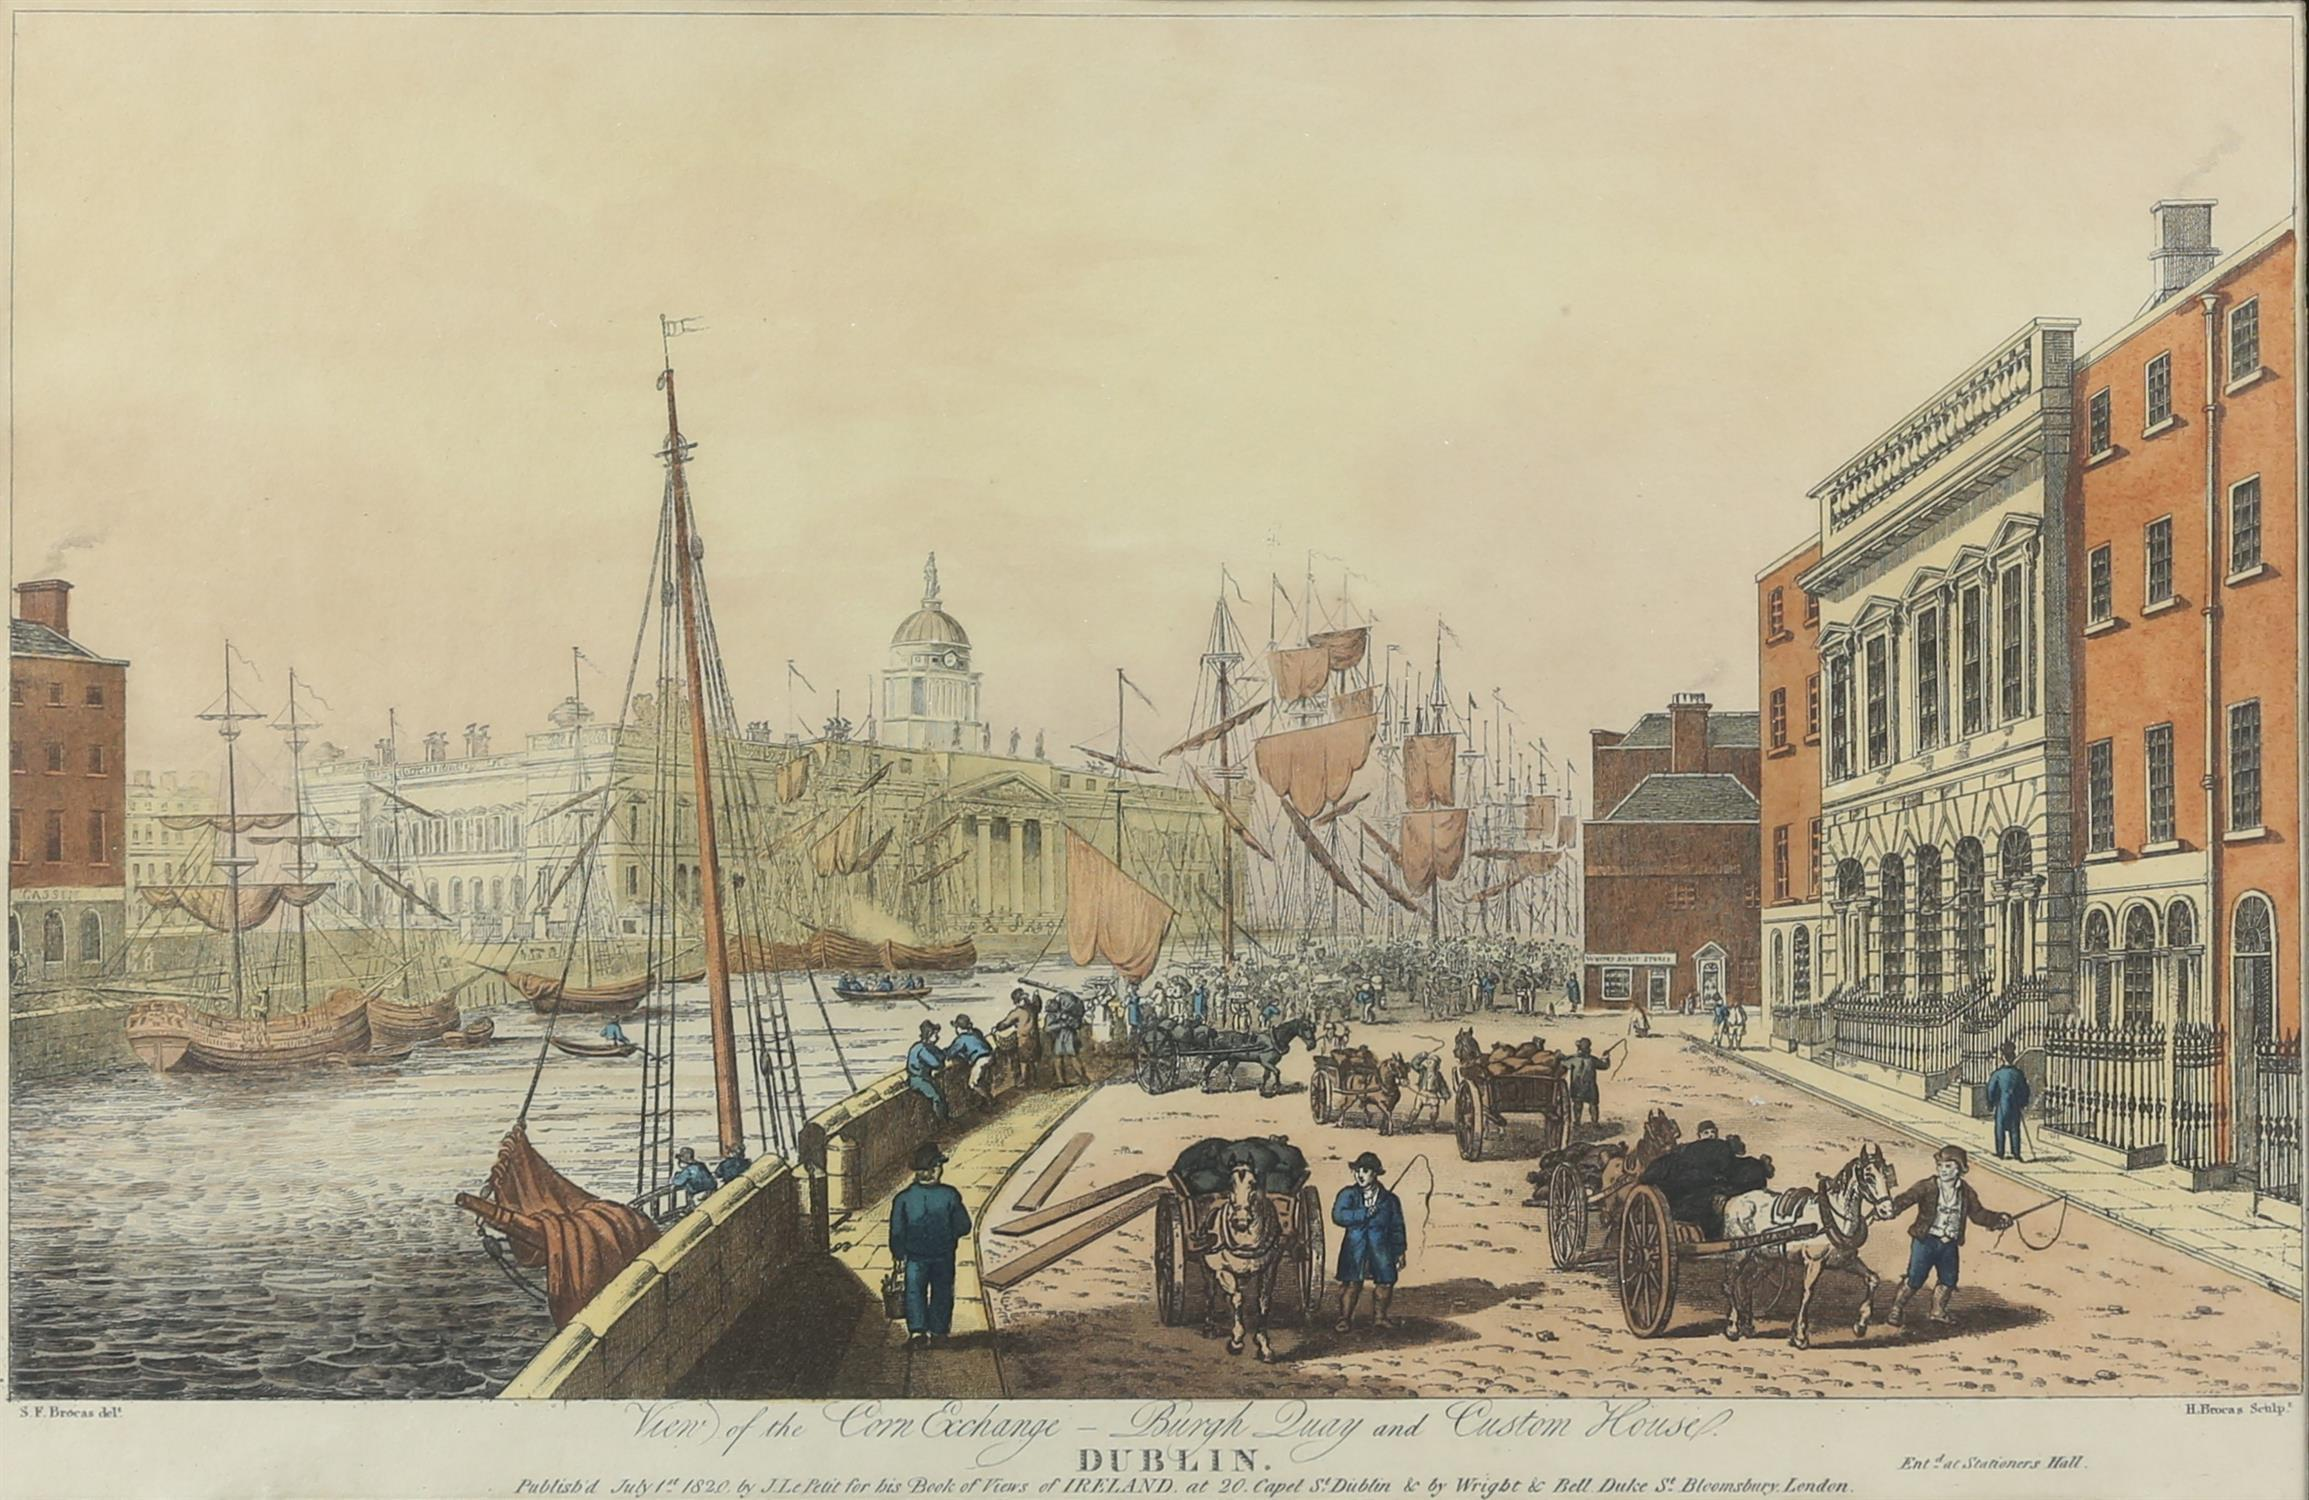 Henry Brocas. View of the Corn Exchange, Burgh Quay and Custom House, Dublin. H/col engraving after